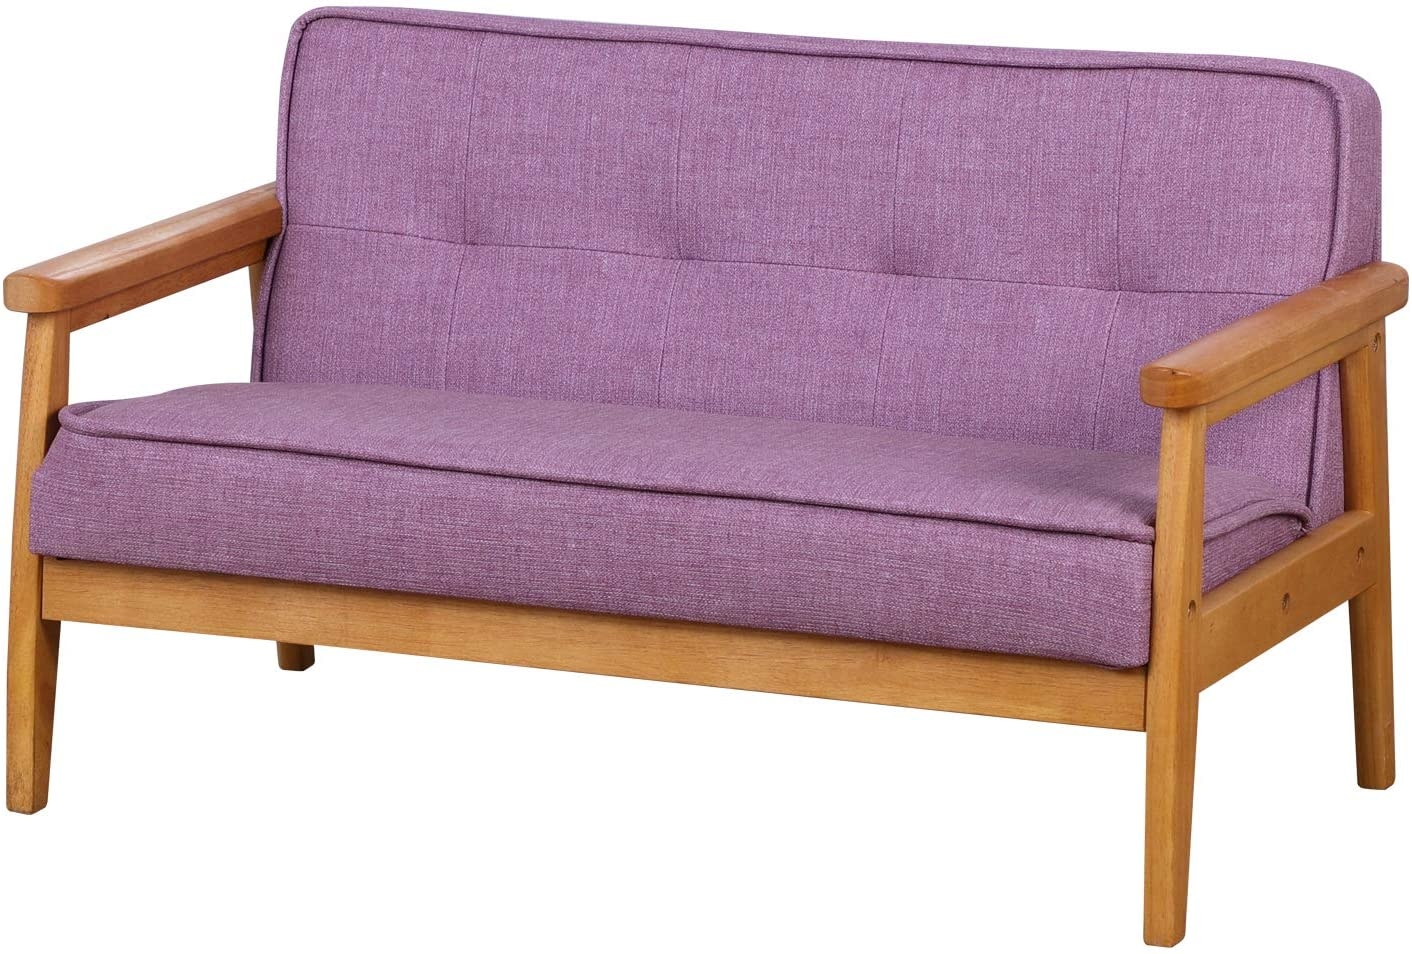 Double Seater Kid sold out Sofa Chair Couch Wood with and Discount is also underway Solid Arm